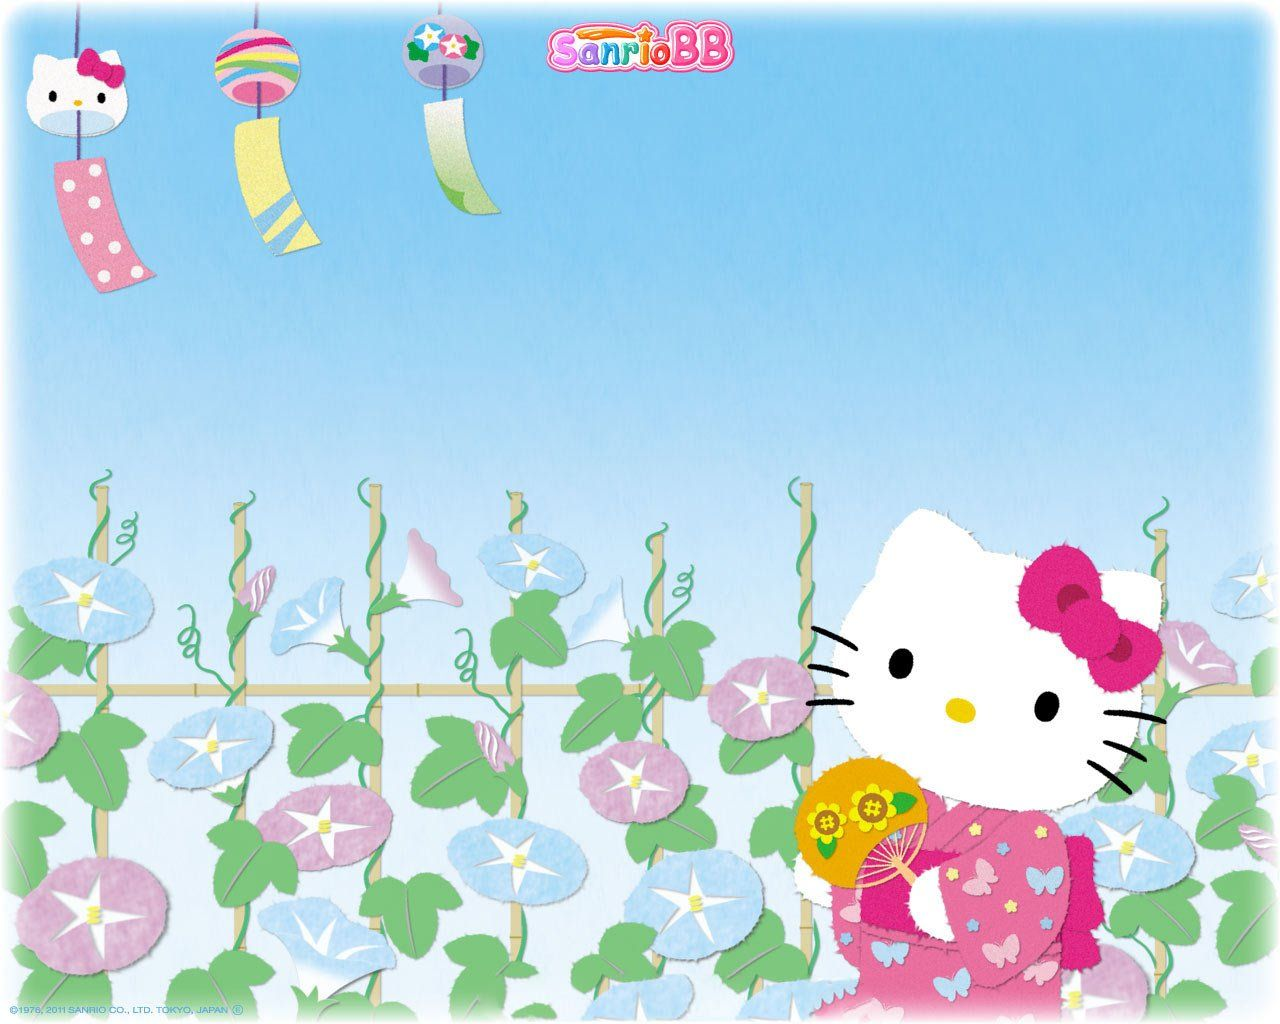 1280x1024 Free download Hello Kitty Spring Wallpaper [1280x1024] for ...